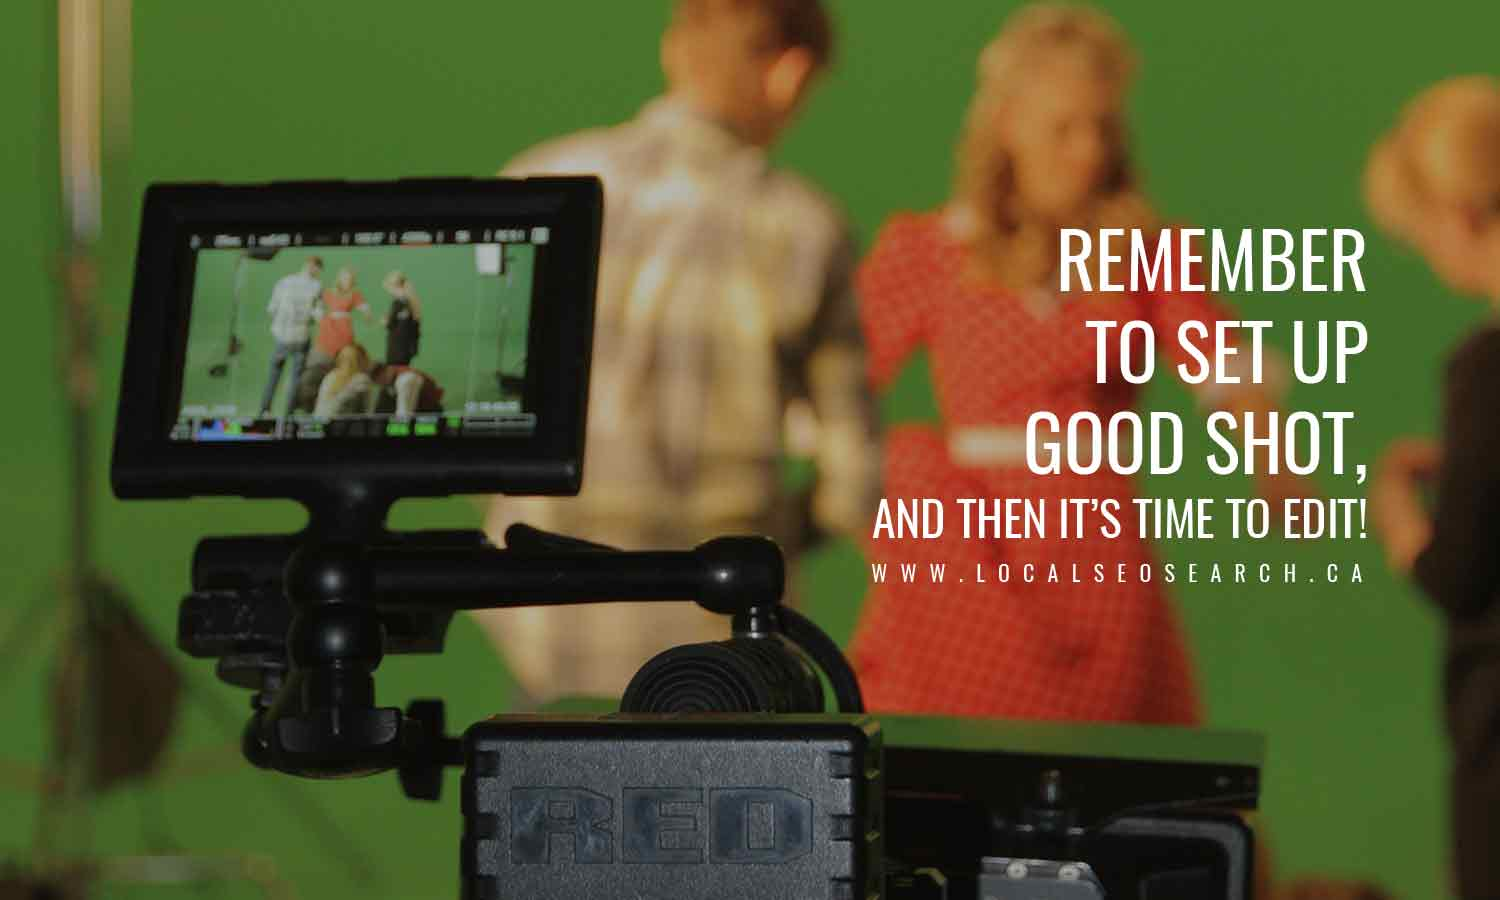 Remember-to-set-up-a-good-shot